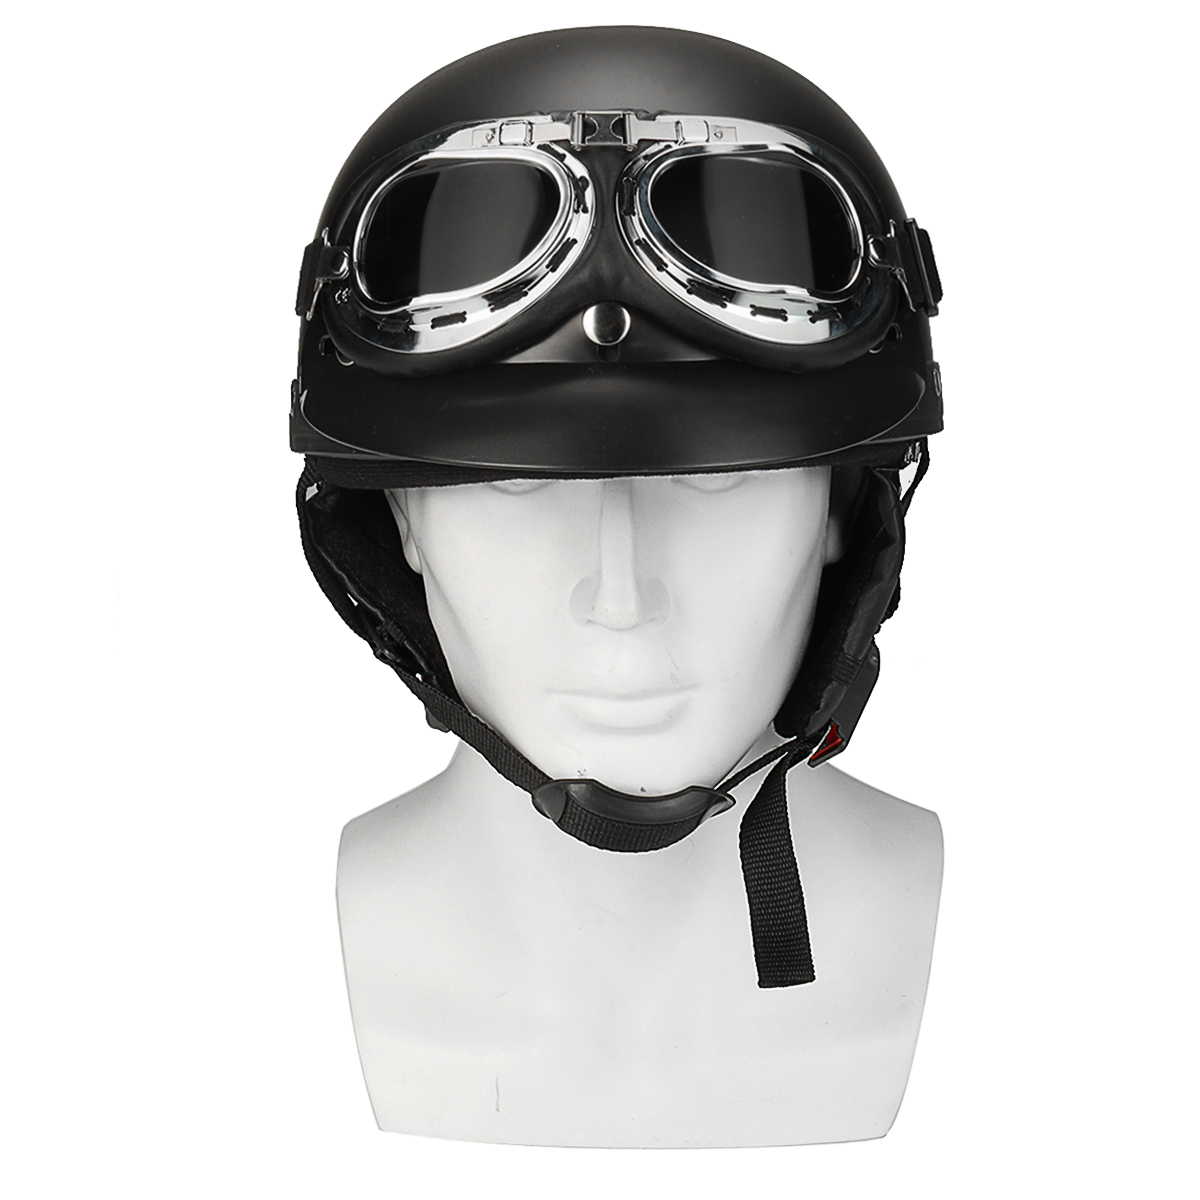 a05cf2b7 retro matt black motorcycle half face helmet biker scooter with sun ...